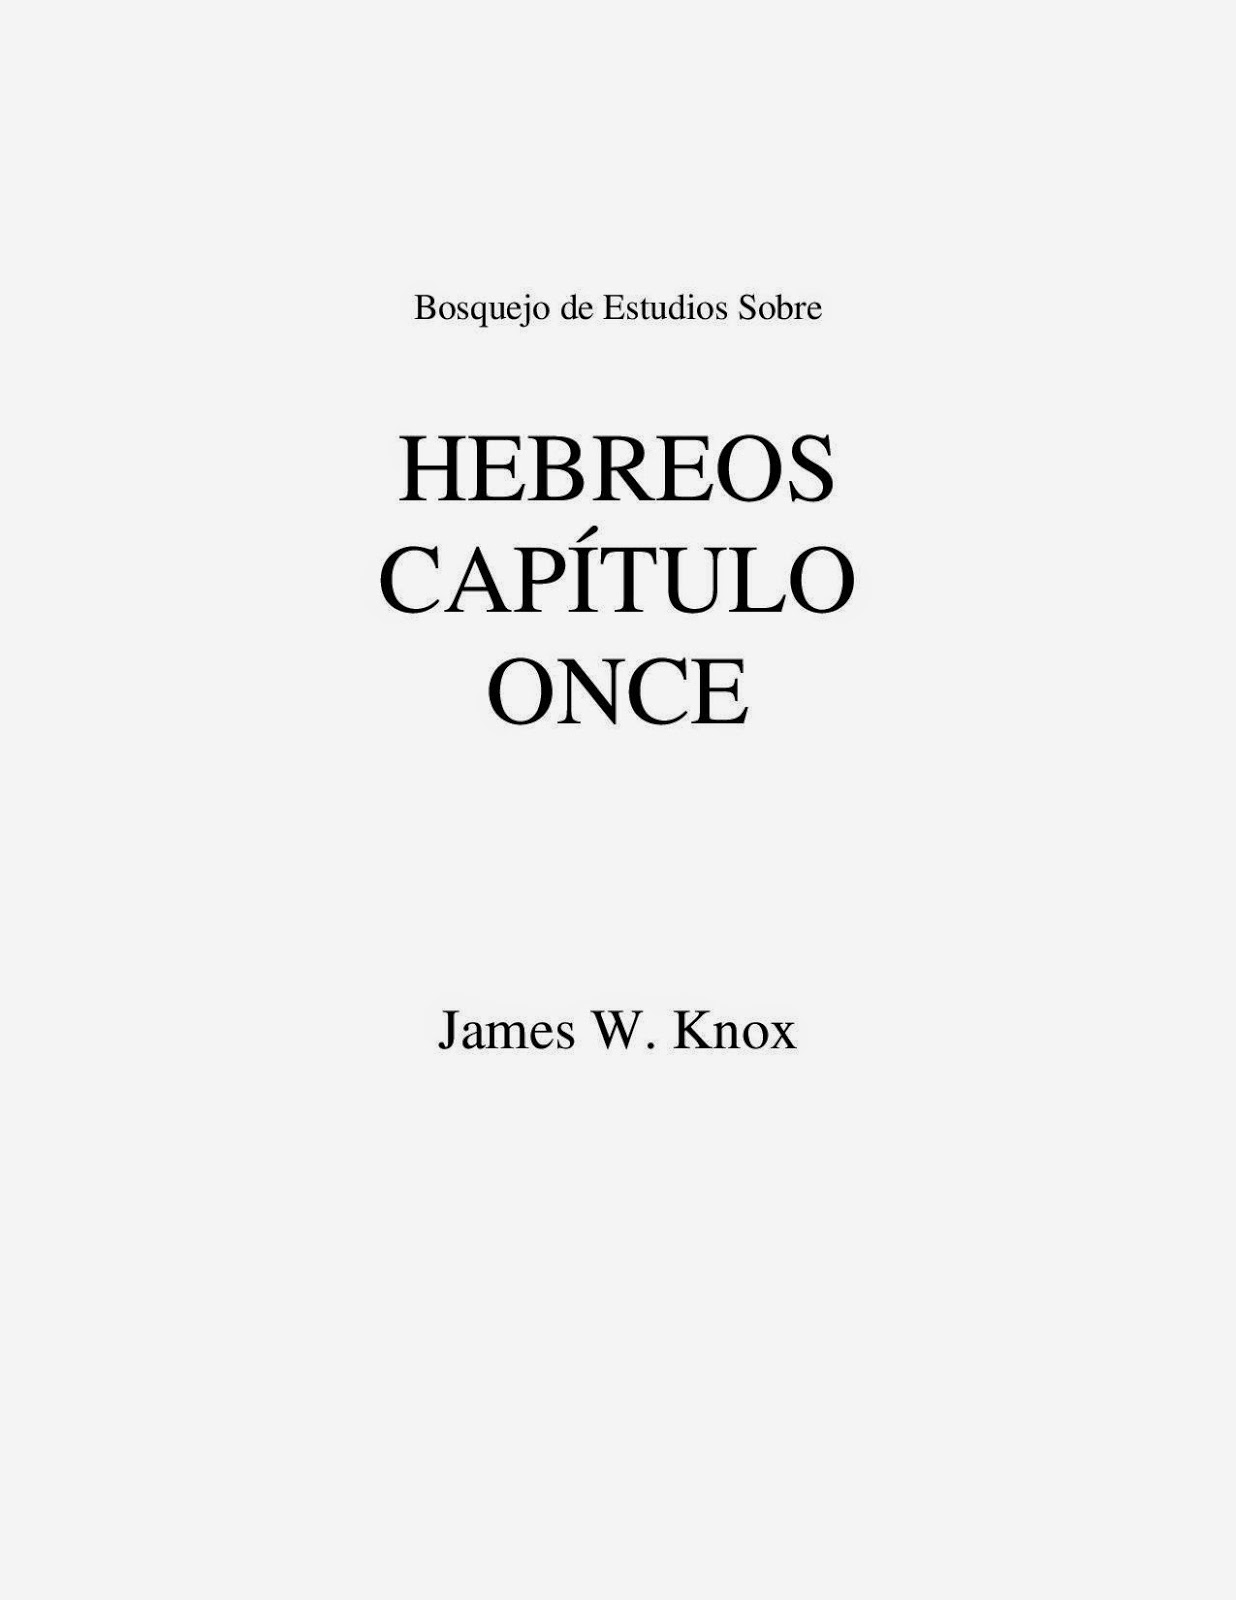 James W. Knox-Hebreos Capítulo Once-